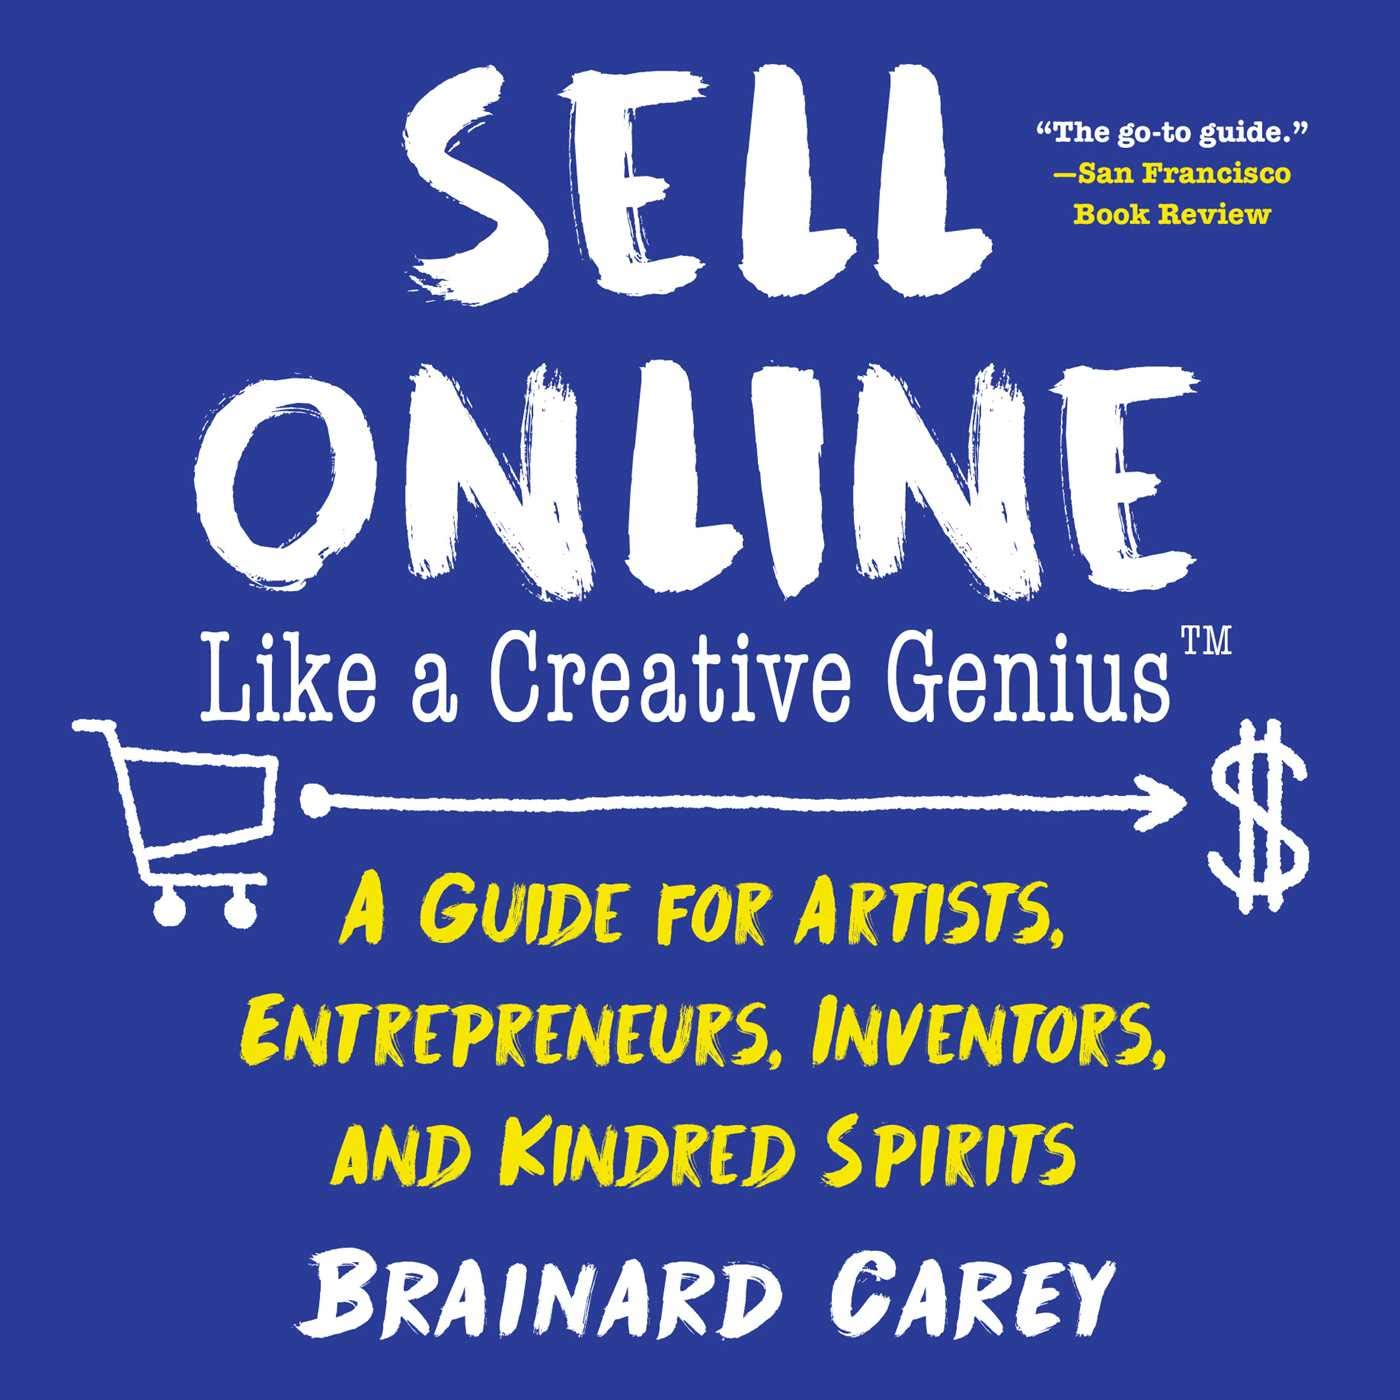 Entrepreneurs Inventors Fund Your Dreams Like a Creative Genius: A Guide for Artists and Kindred Spirits